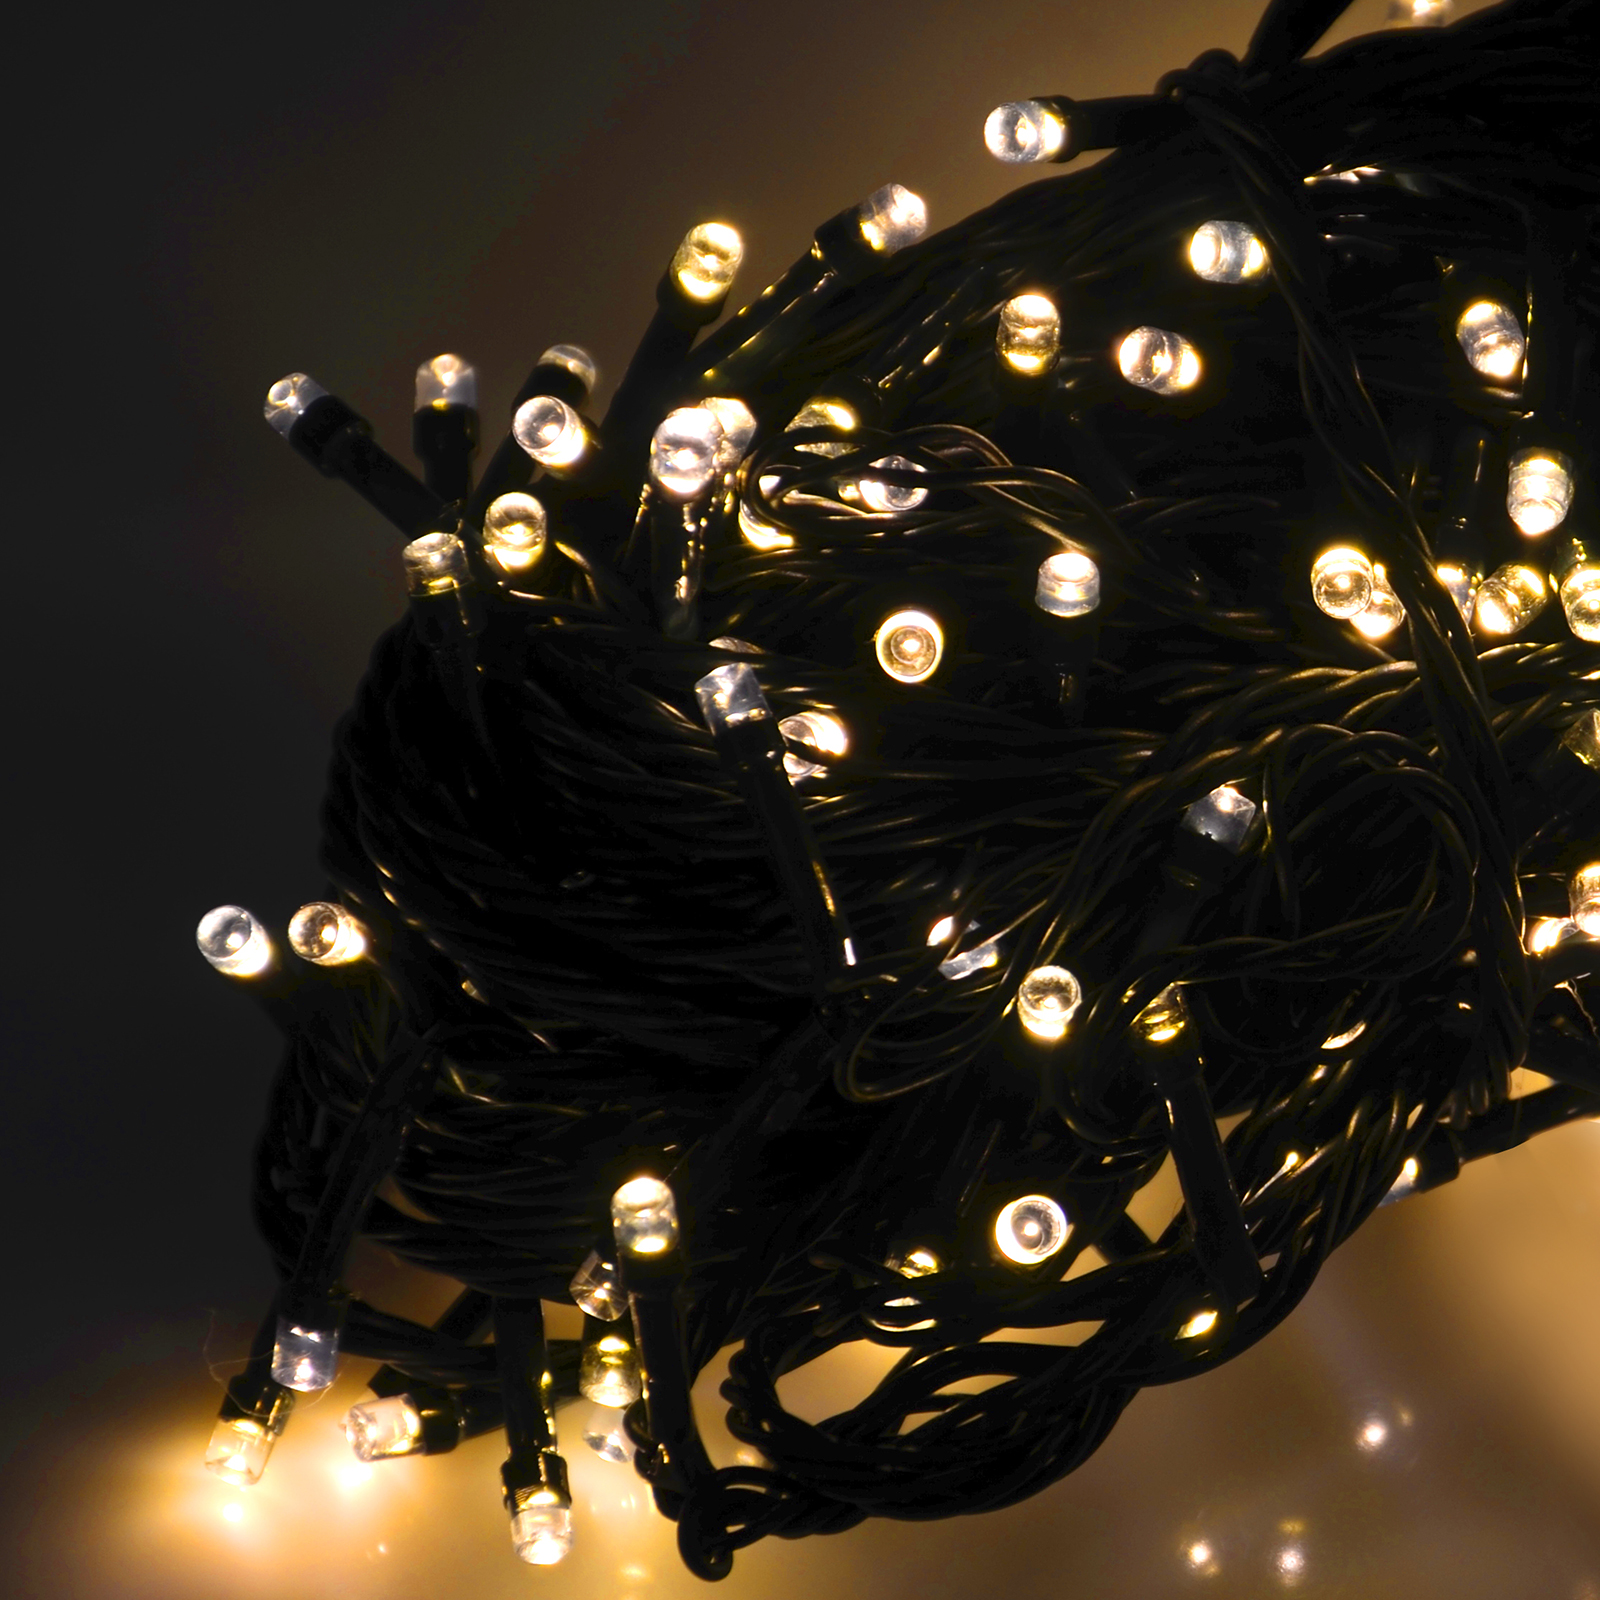 Led String Lights Indoor Battery : String Of 200 Battery Operated Chasing LED Lights Chain Indoor Outdoor Christmas